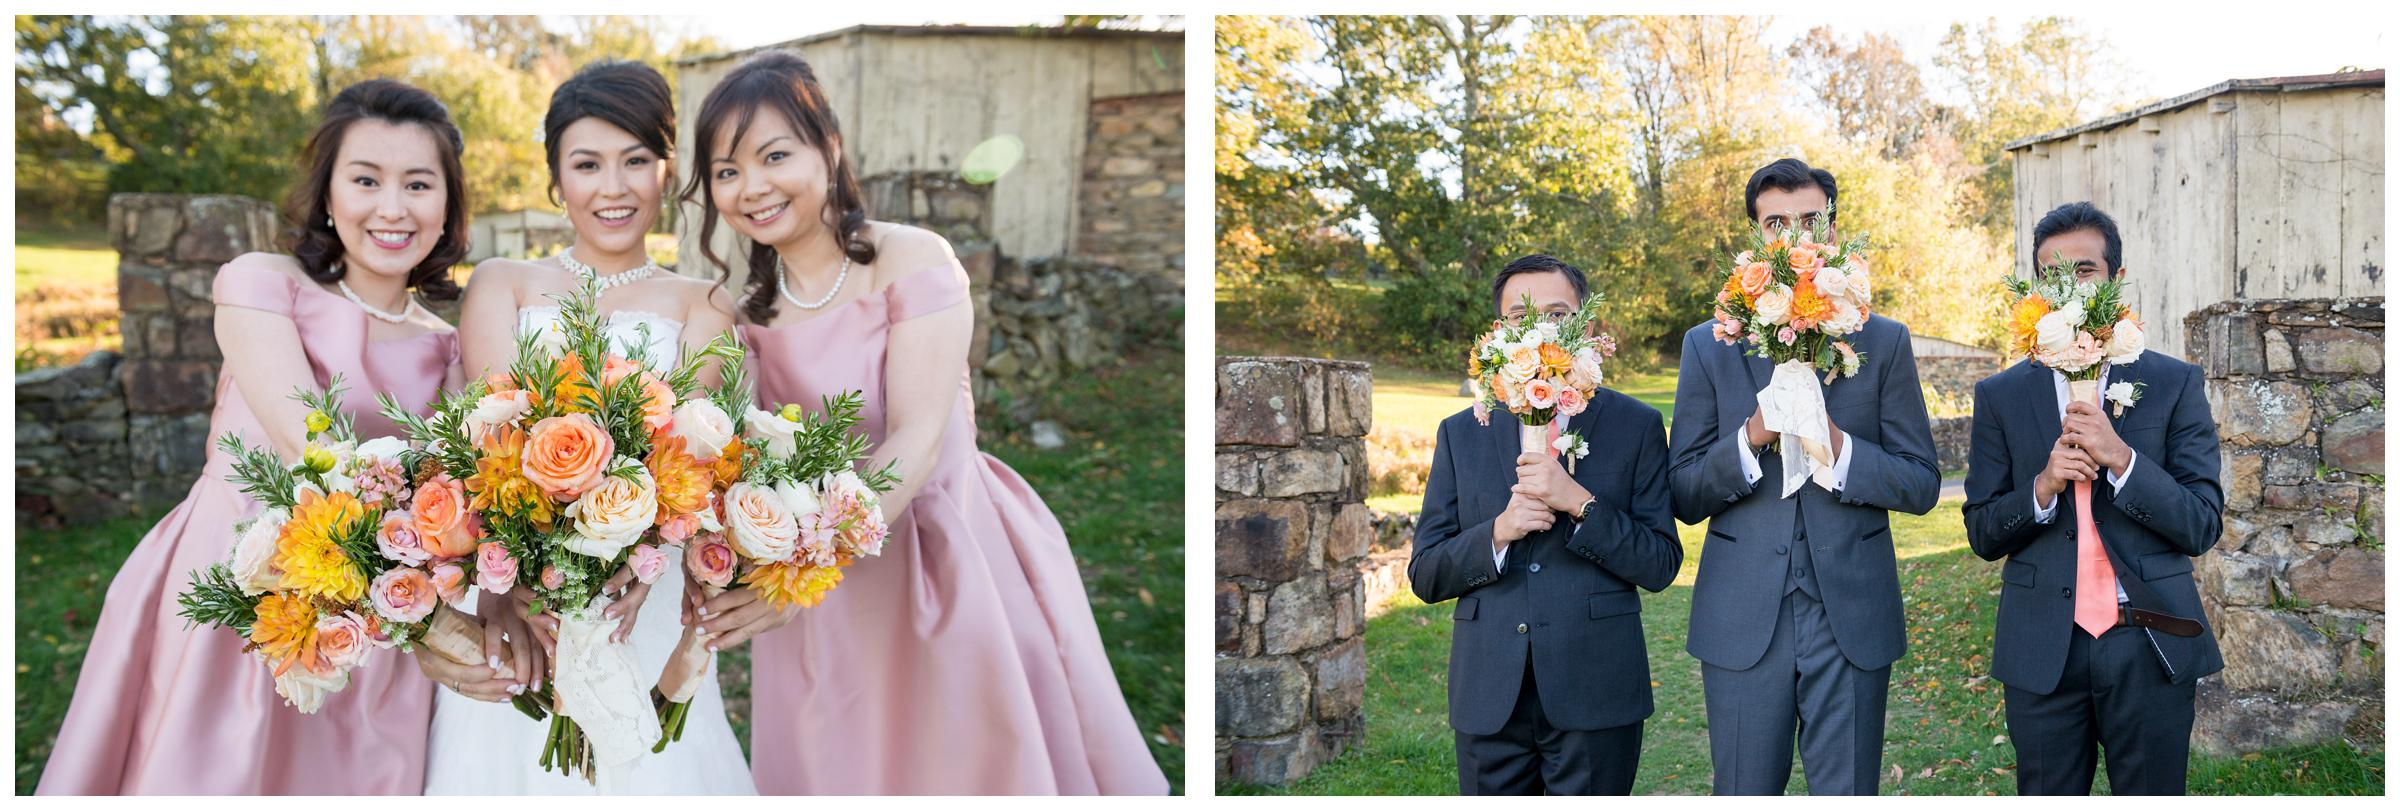 Portraits of bridesmaids and groomsmen with bouquets.